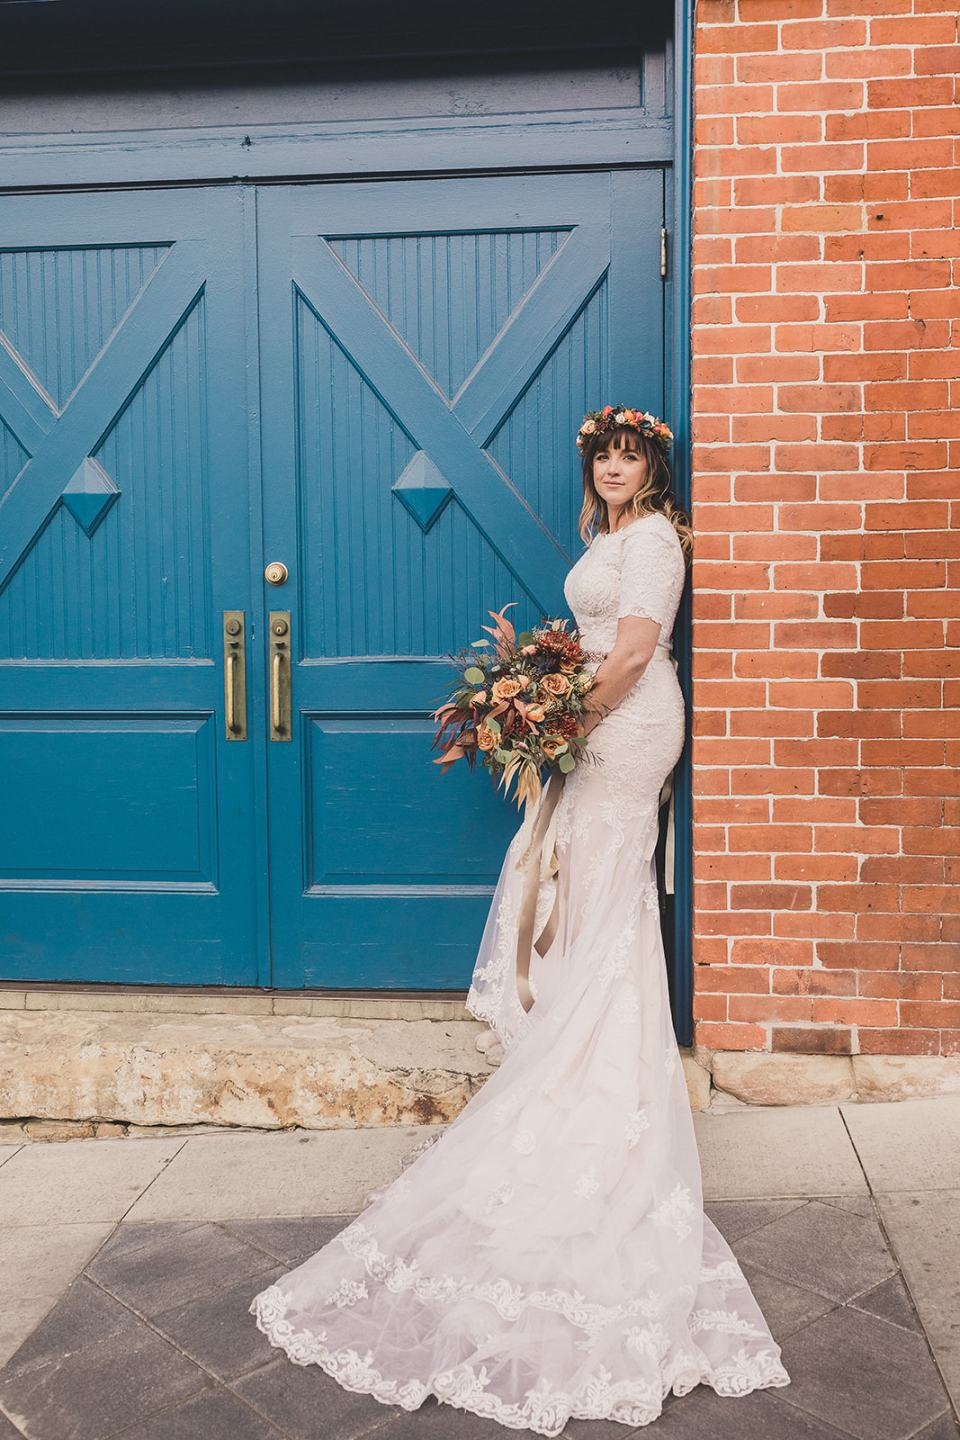 bride poses against brick wall by blue gate